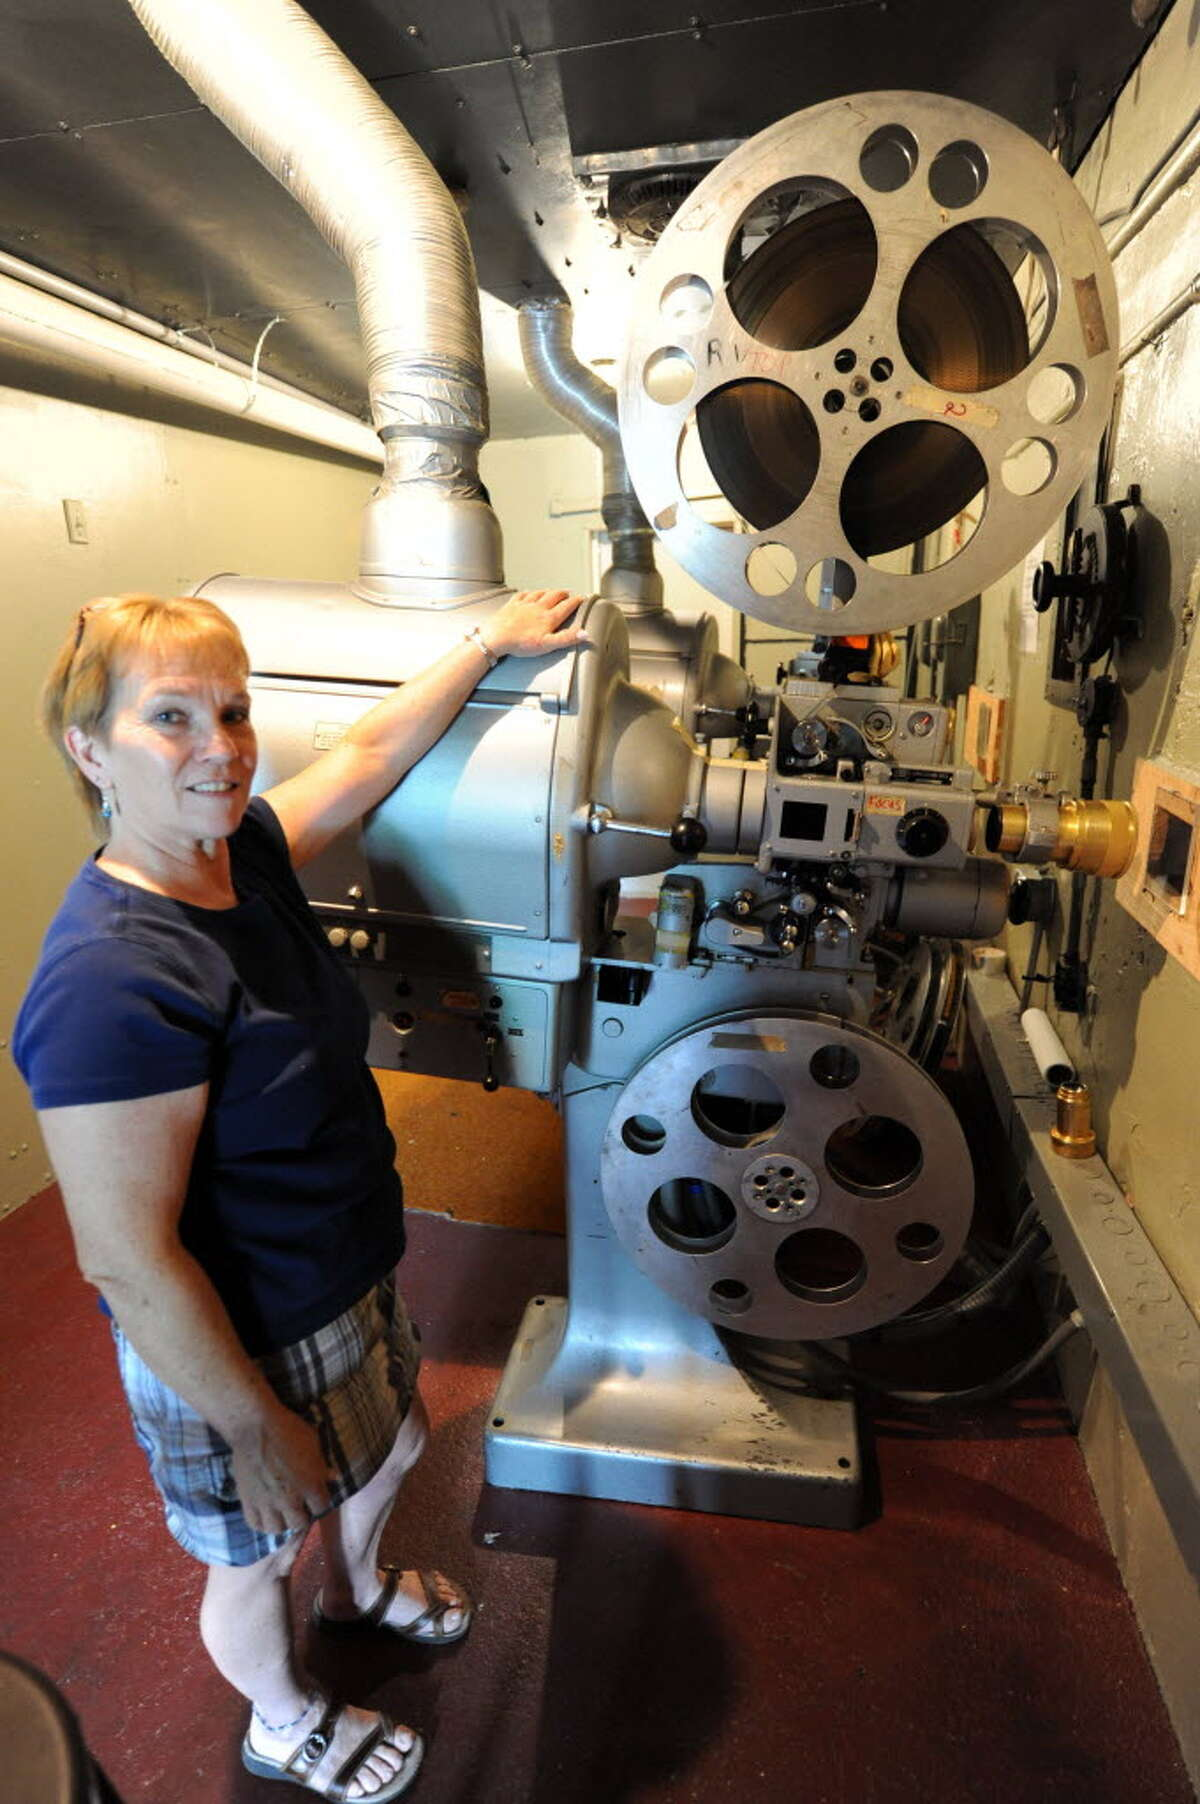 Nanci Hayes, owner of the Carol Theater in Chestertown, says the seasonal theater will not open this year, because she can not afford an upgrade to digital technology that would replace the old-fashioned film projector seen here. (Photo by Michael P. Farrell / Times Union)